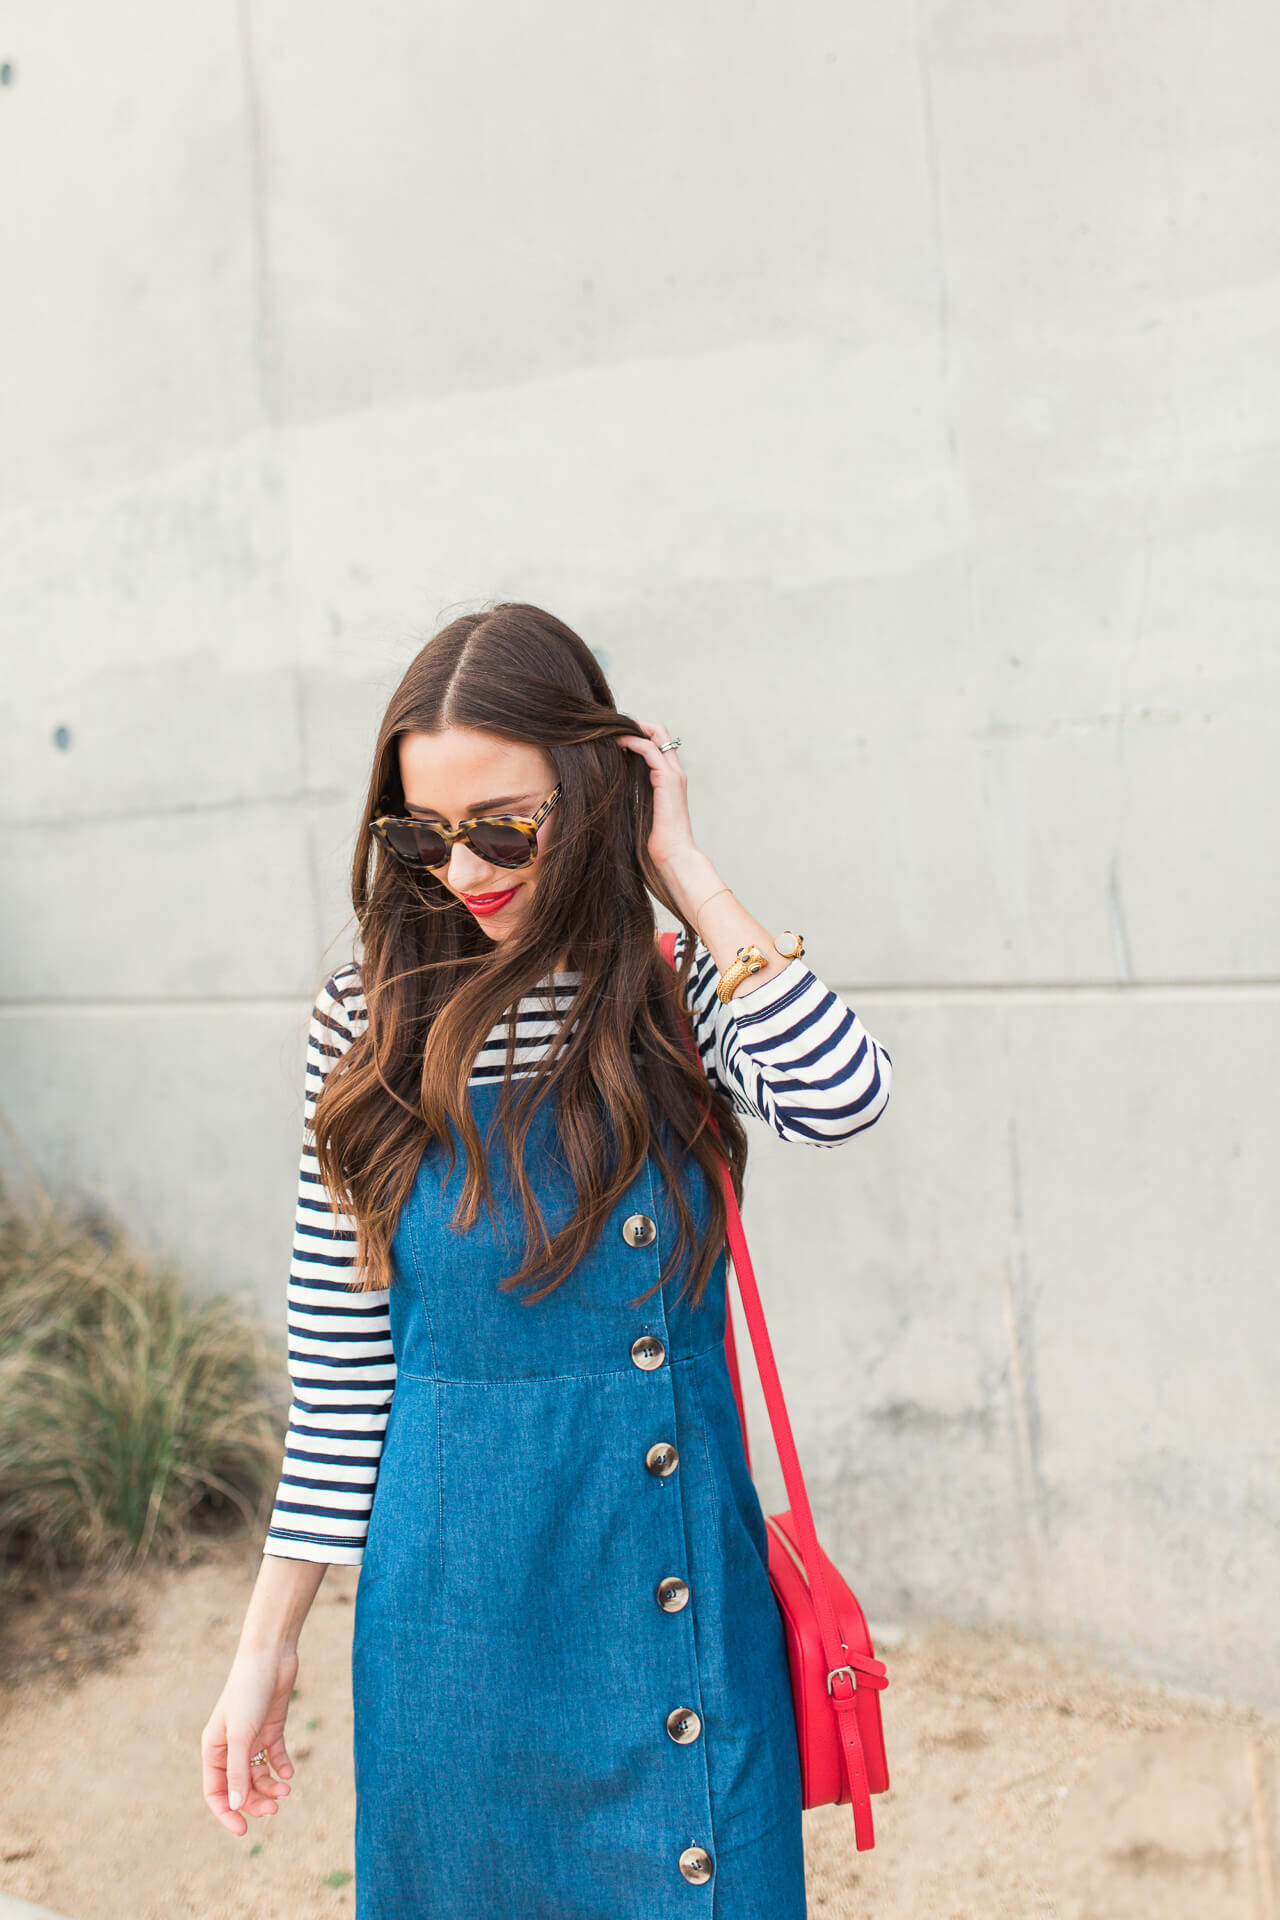 modest outfit inspiration from M Loves M